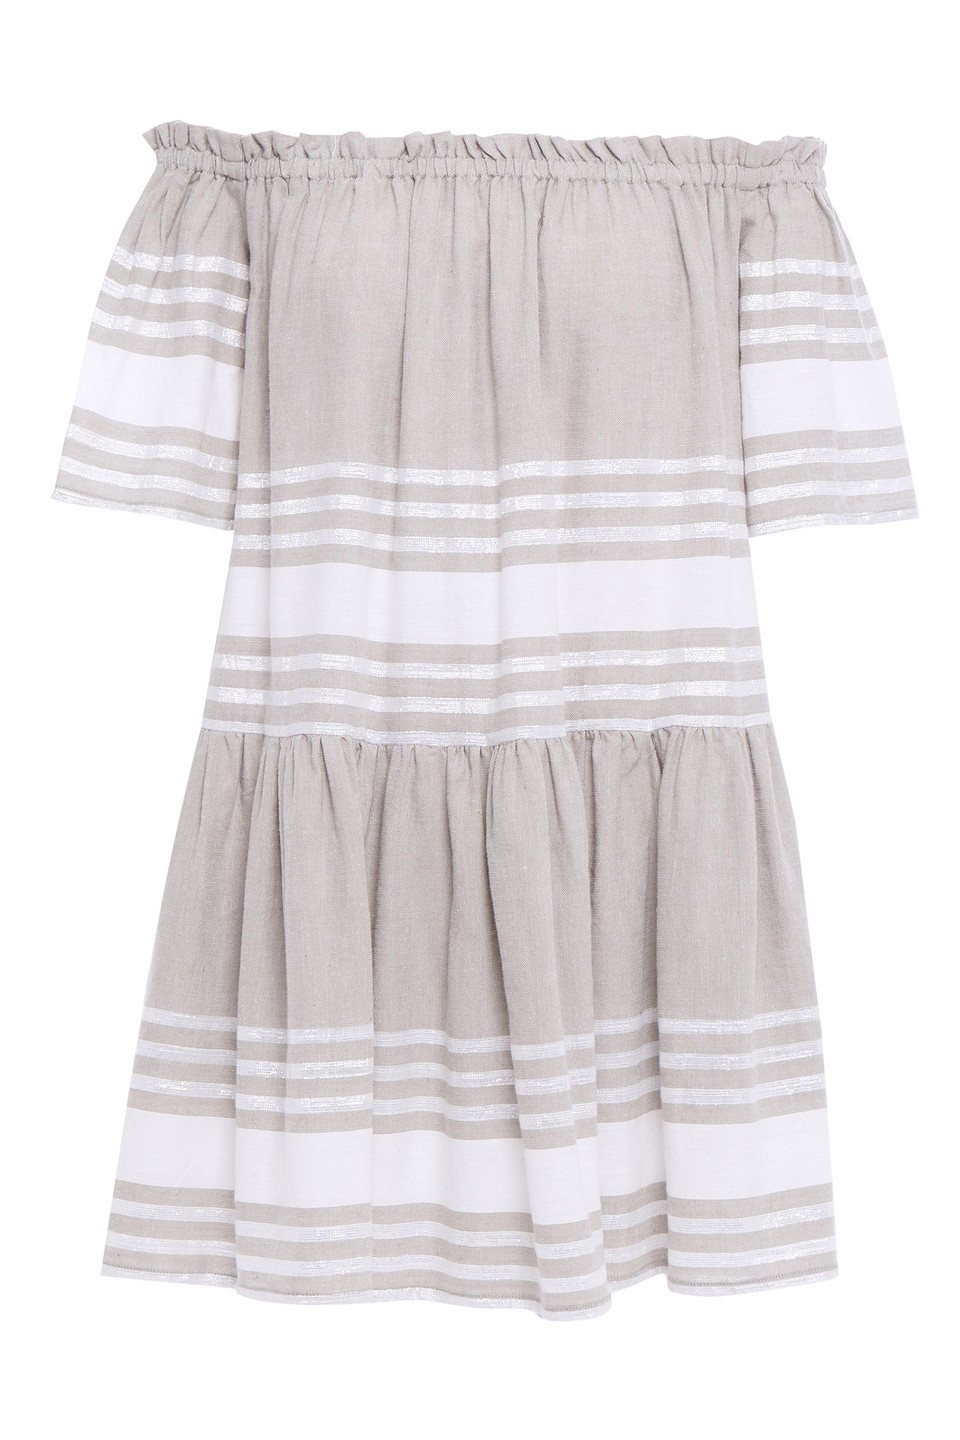 Sundress   Sundress Woman Belted Embroidered Gauze Coverup Gray   Clouty